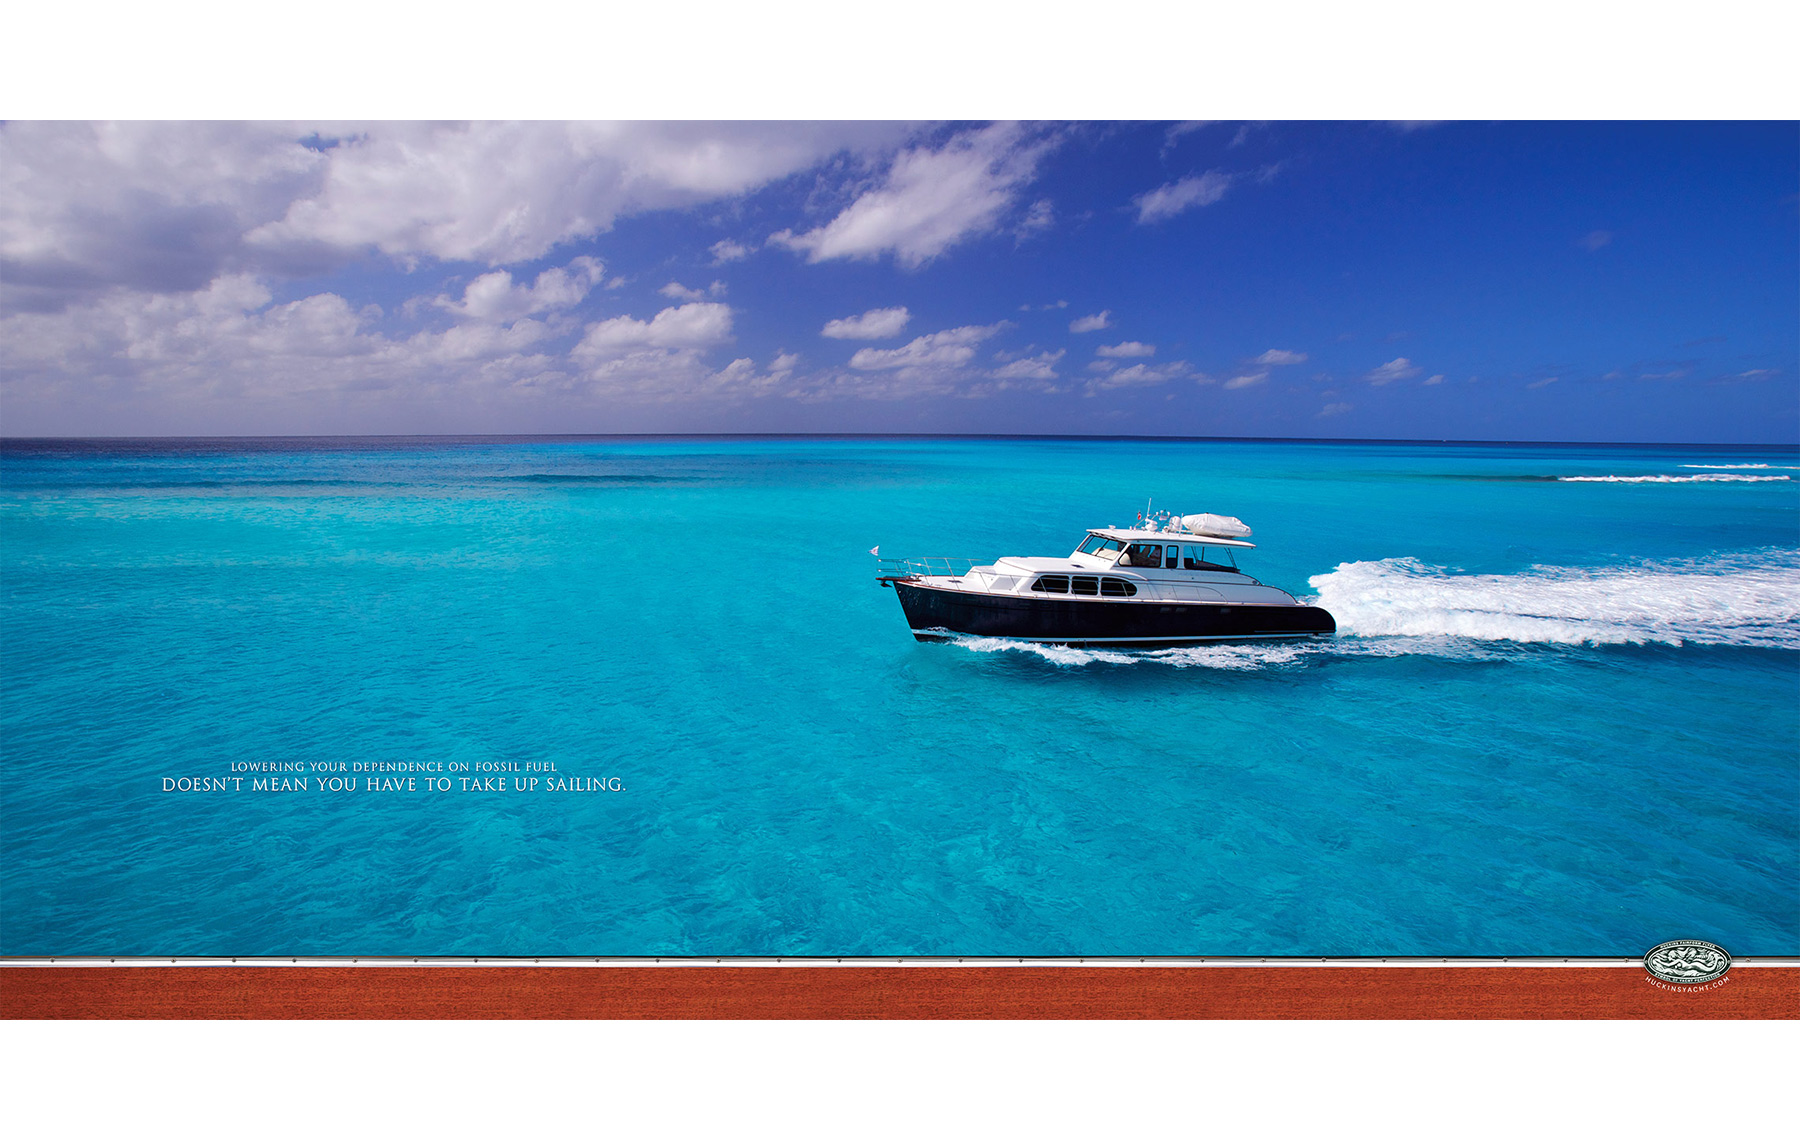 Huckins Yacht Ad photography TAKEUPSAILING-smaller_Robert-Holland